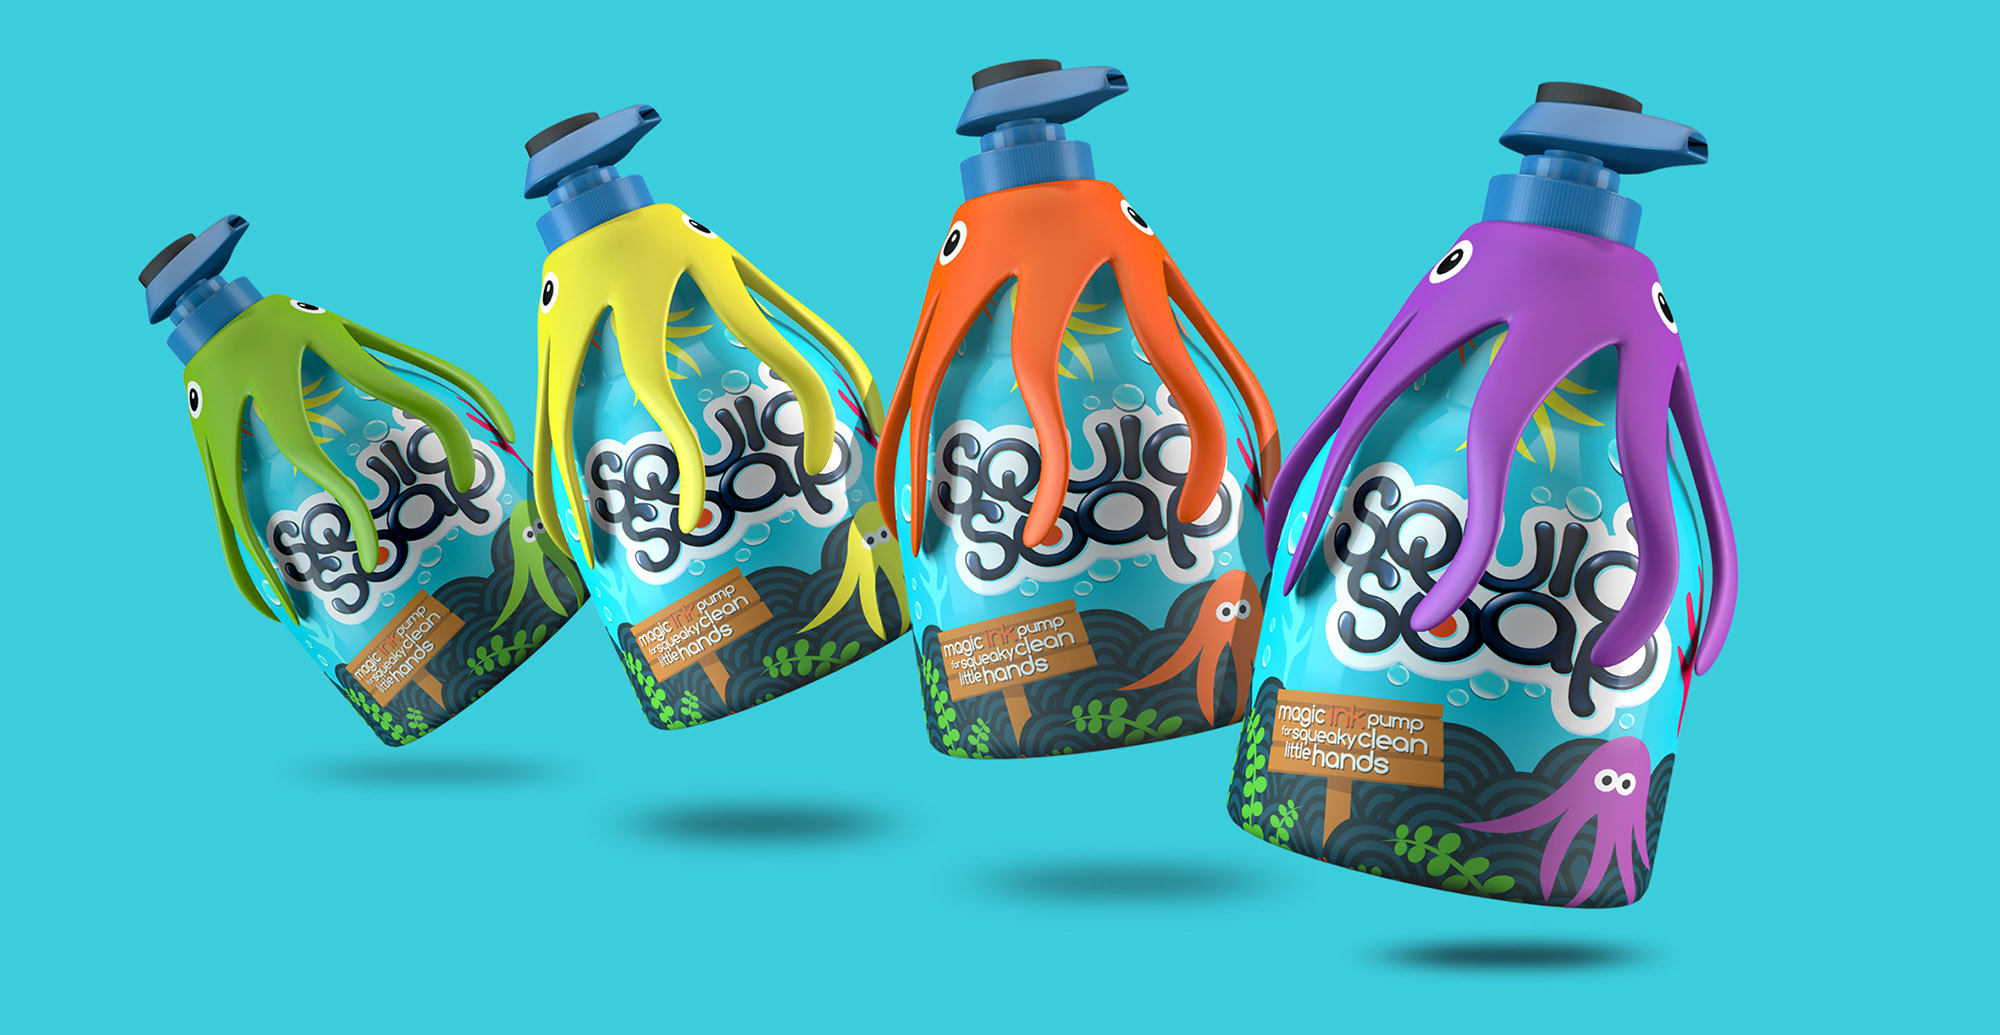 Toiletries packaging design and branding for children's bath product Squid Soap - range extension